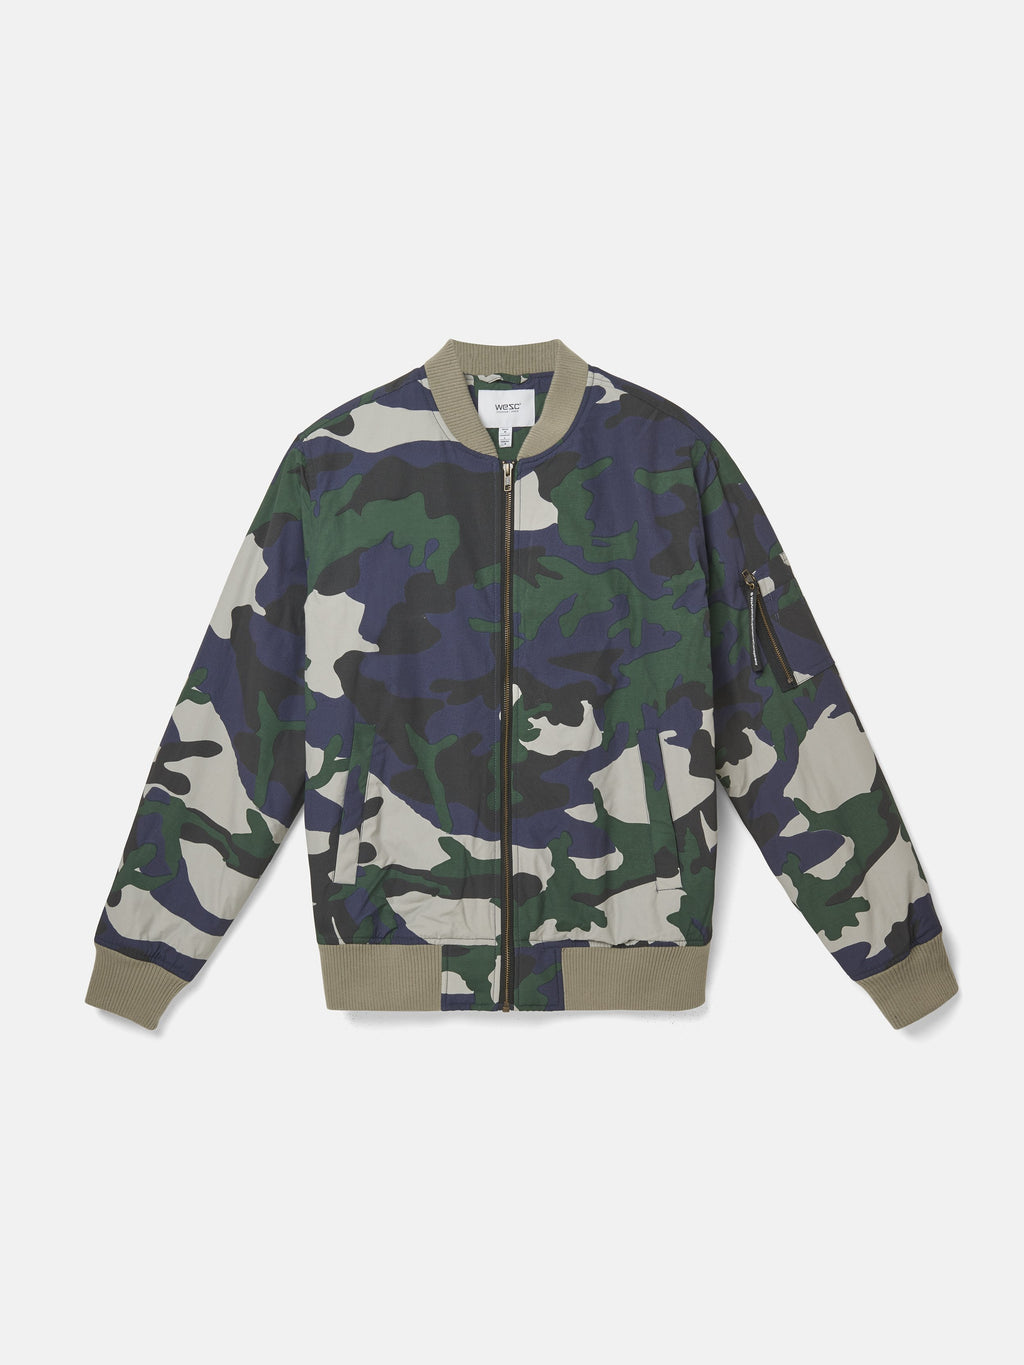 533ed674618a7 THE CAMO BOMBER – WeSC USA